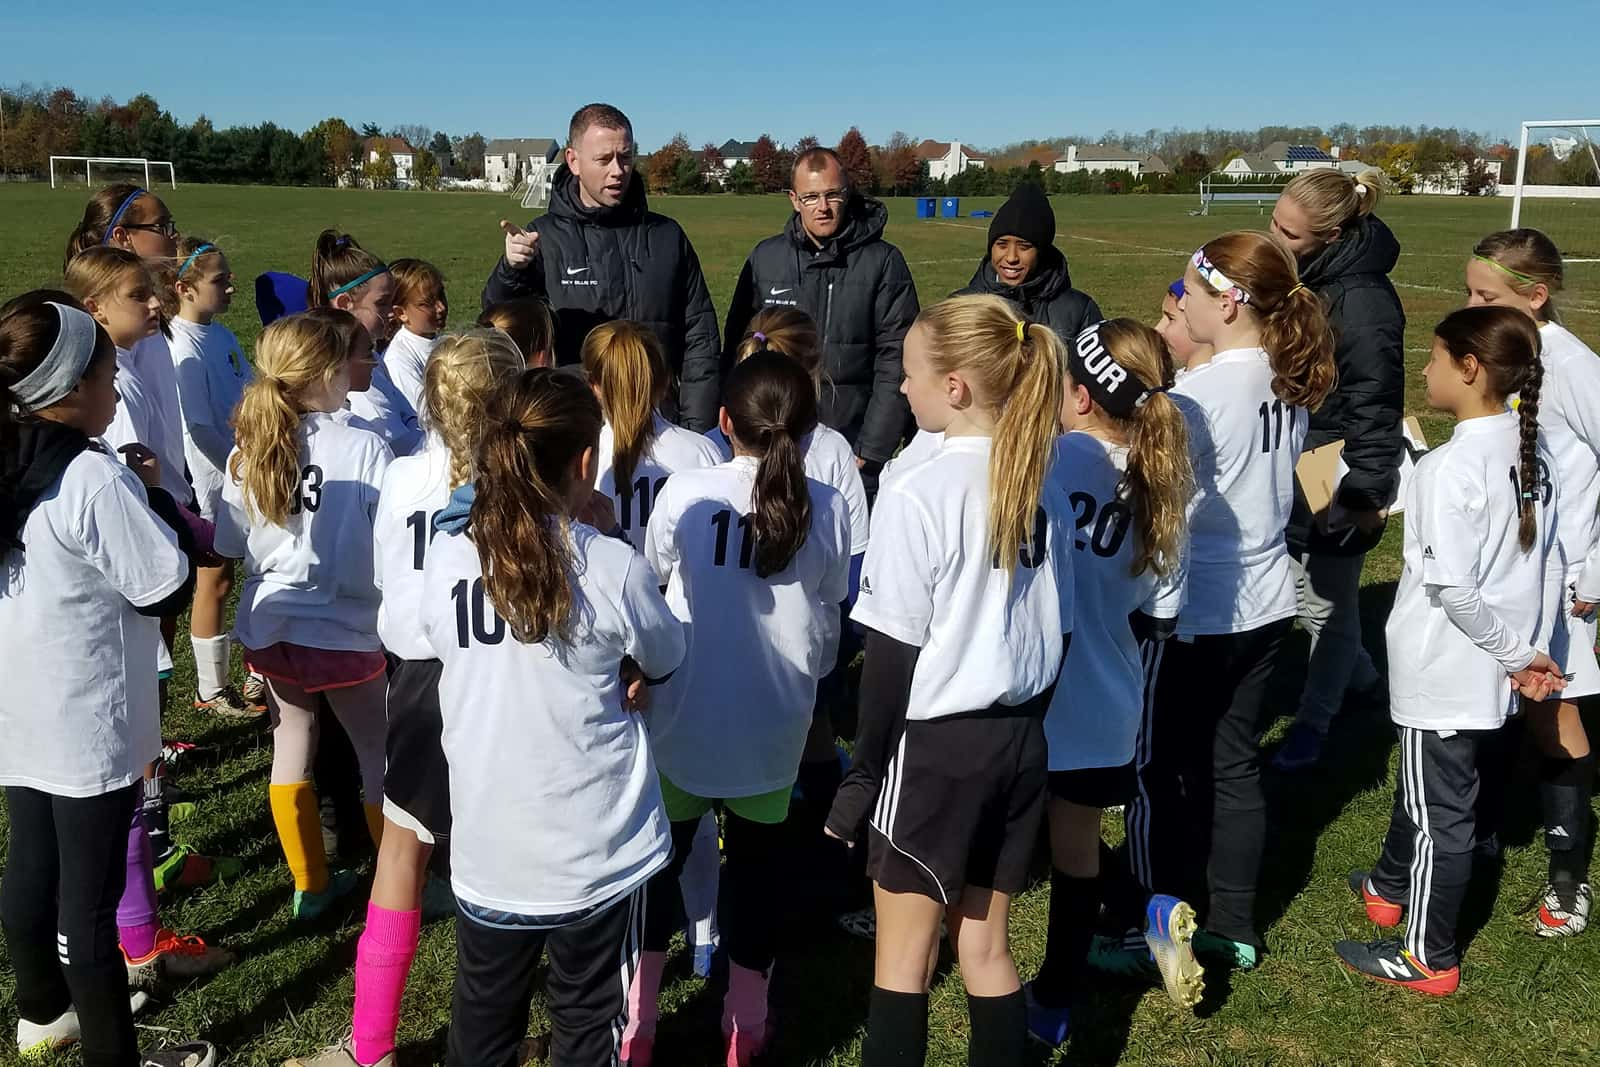 Christy Holly at Tryouts for NJ Youth Soccer's Young Olympians and Club NJYS Programs